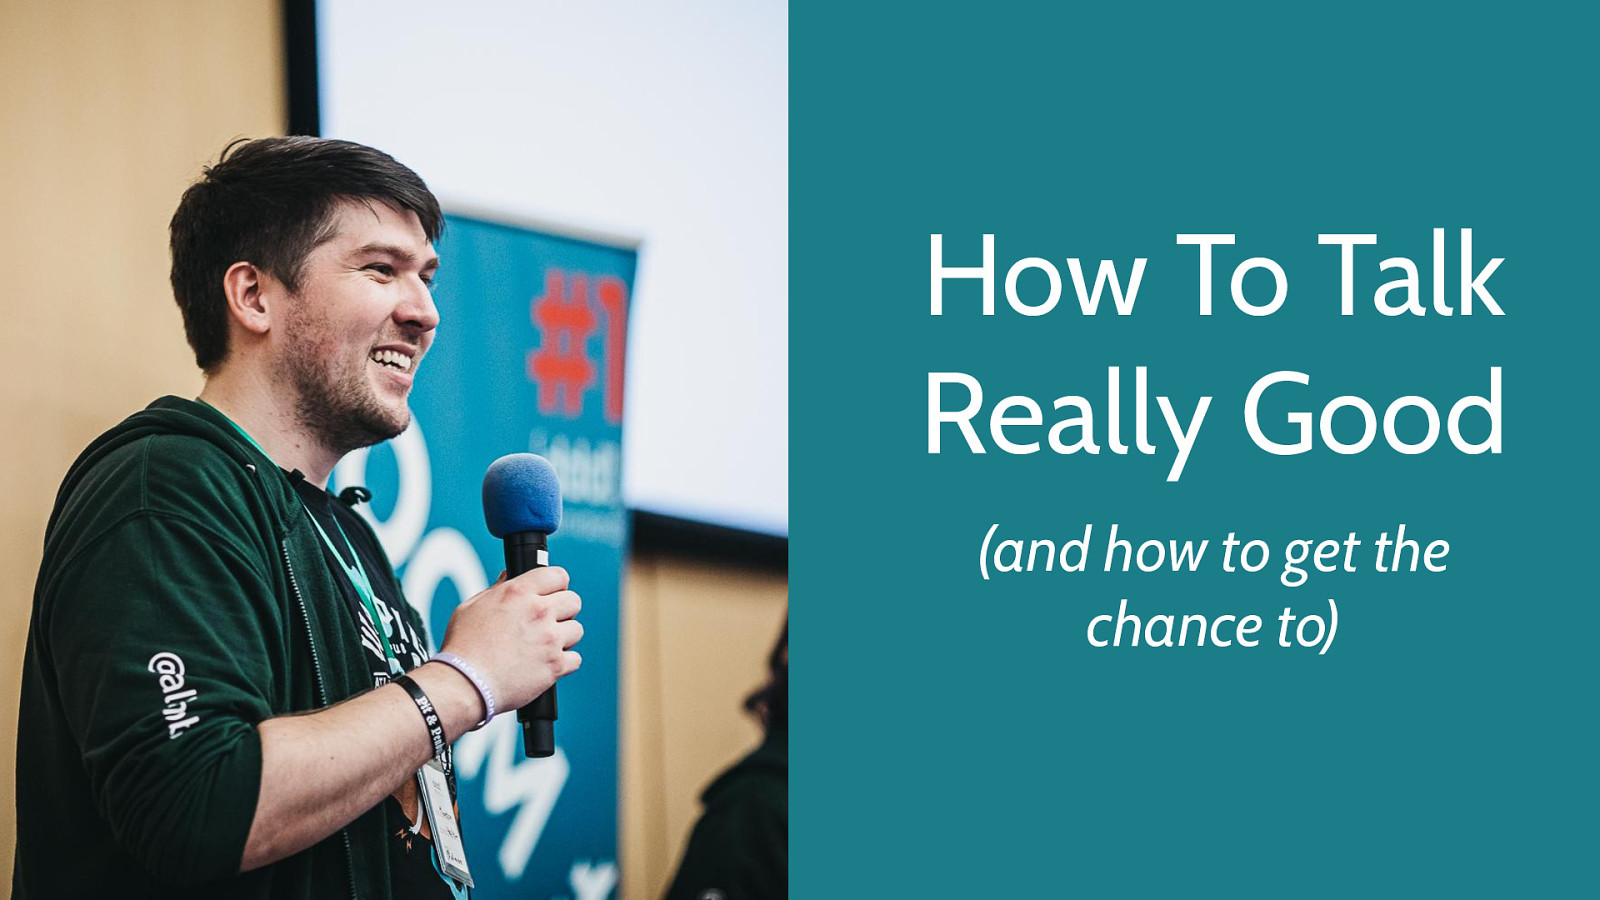 How To Talk Really Good (and how to get the chance to)